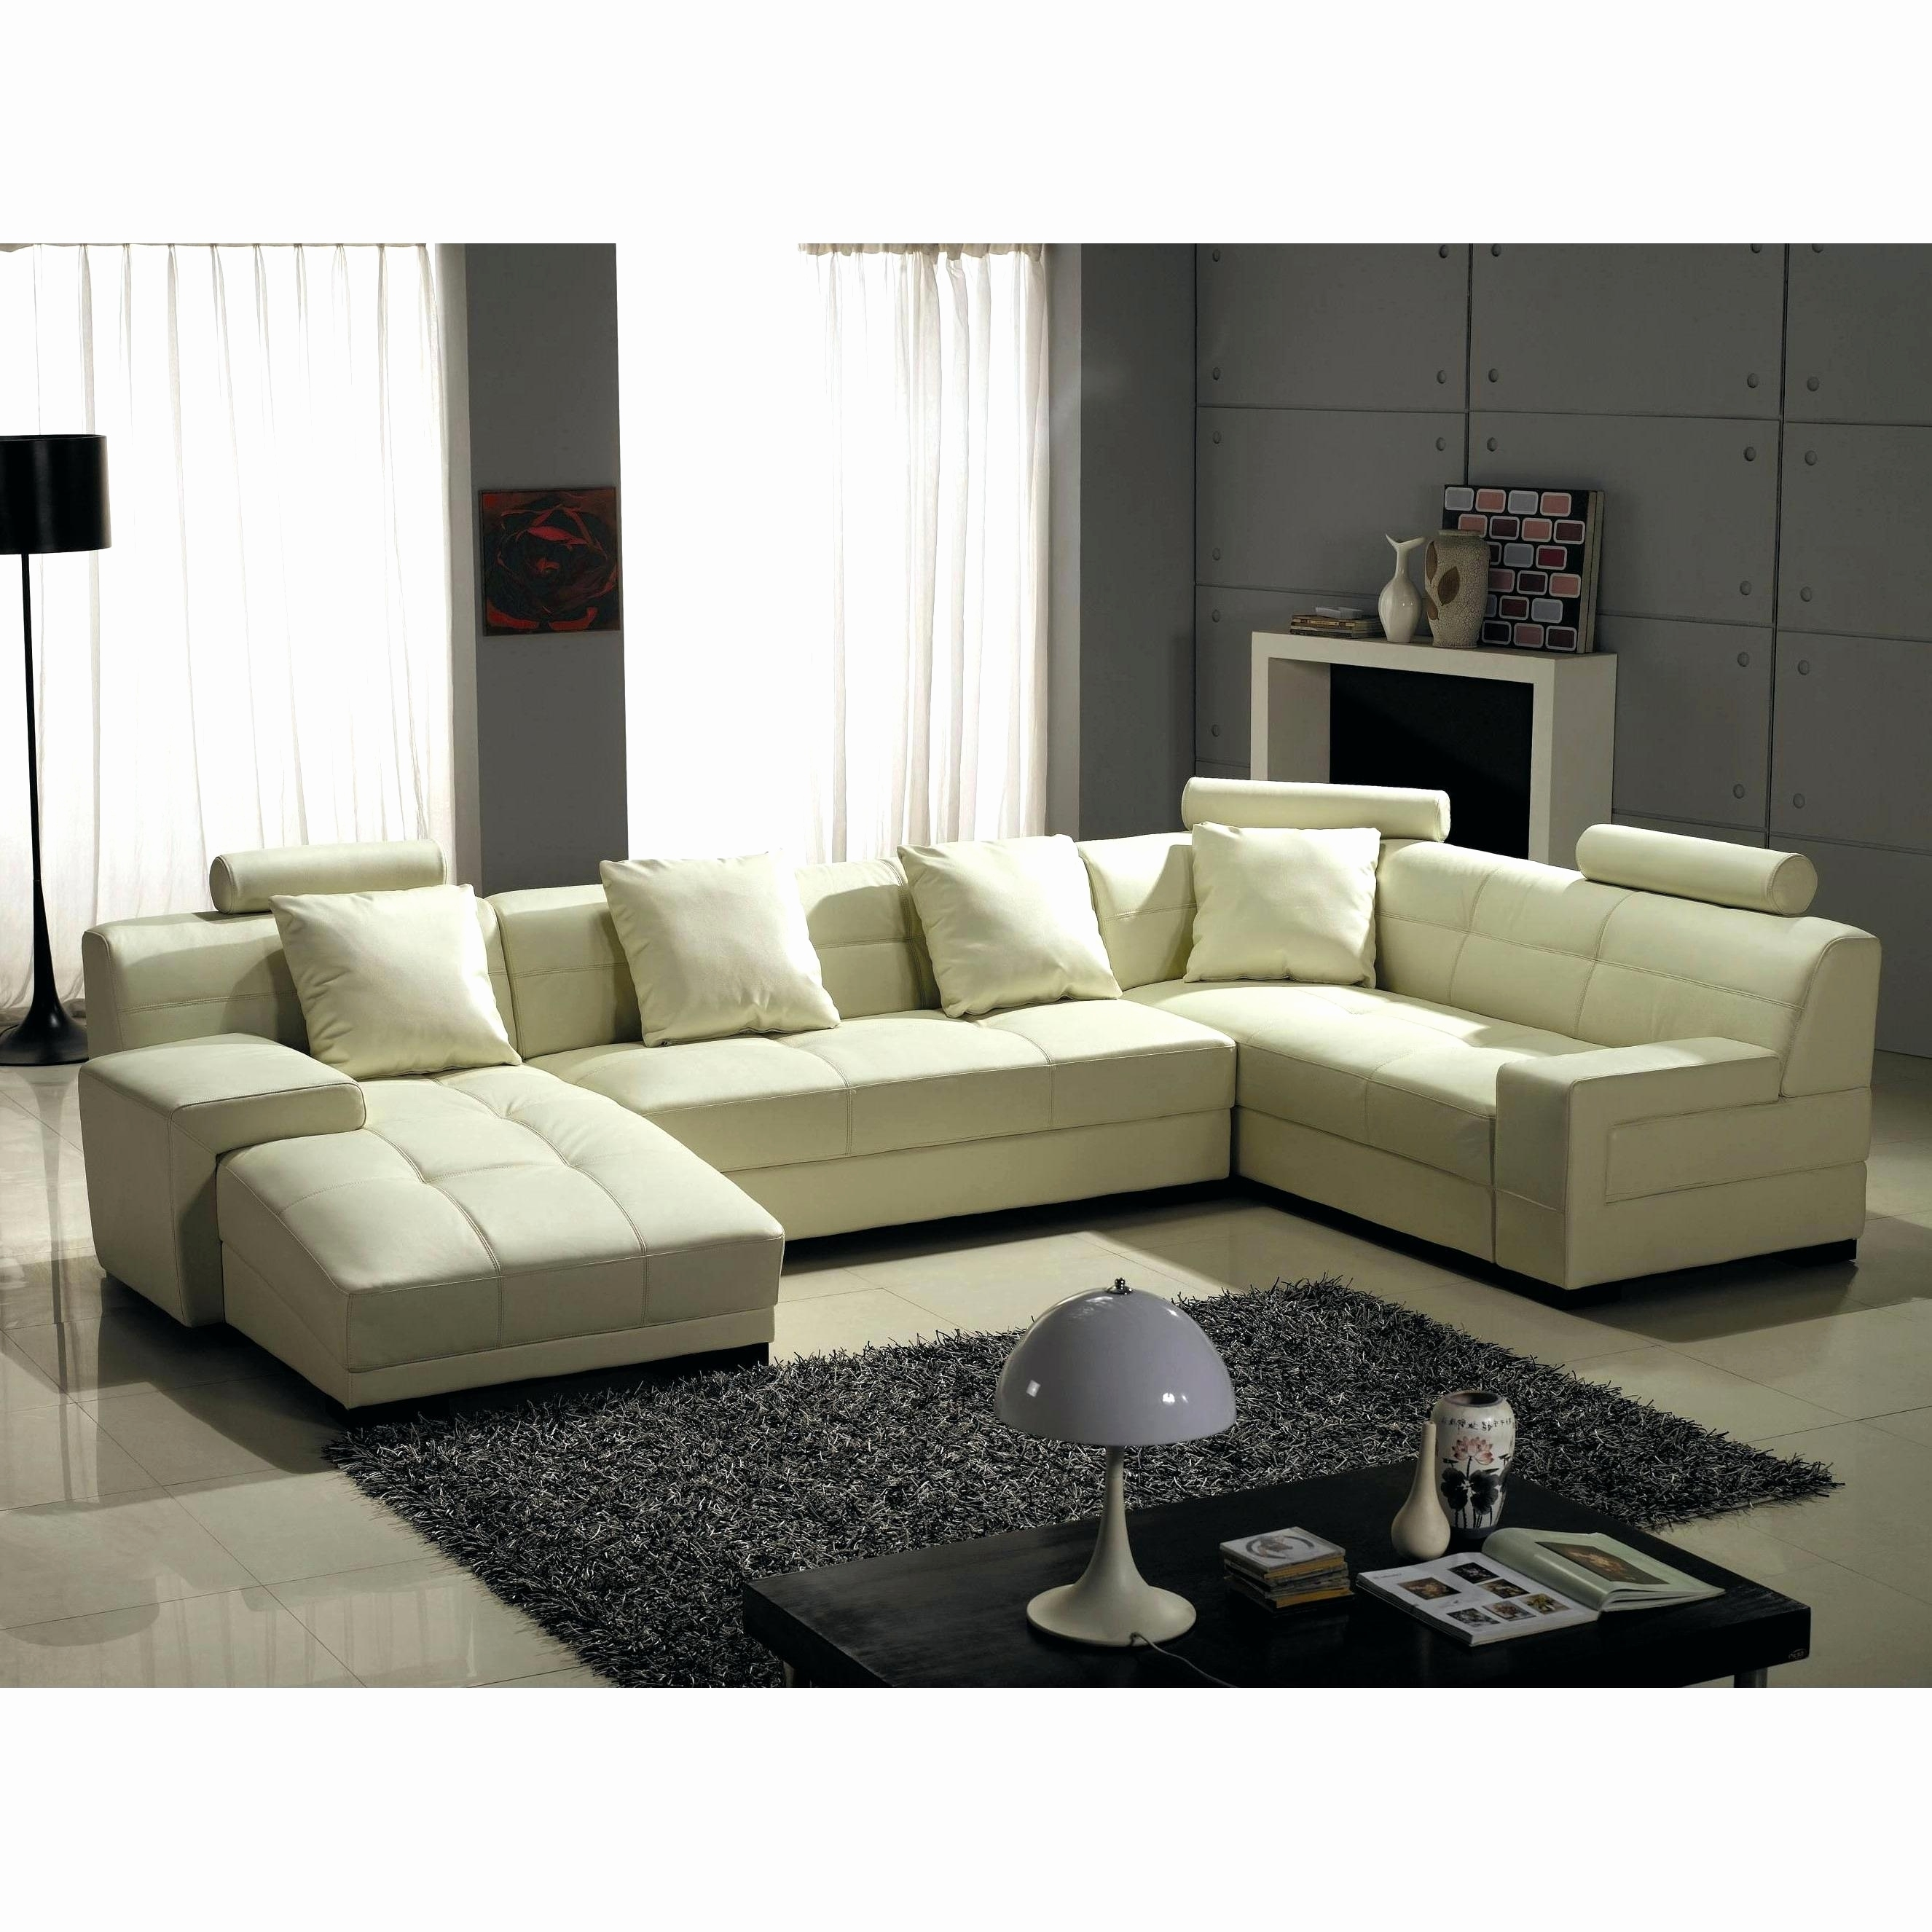 New Sectional Couch For Sale 2018 – Couches And Sofas Ideas with Halifax Sectional Sofas